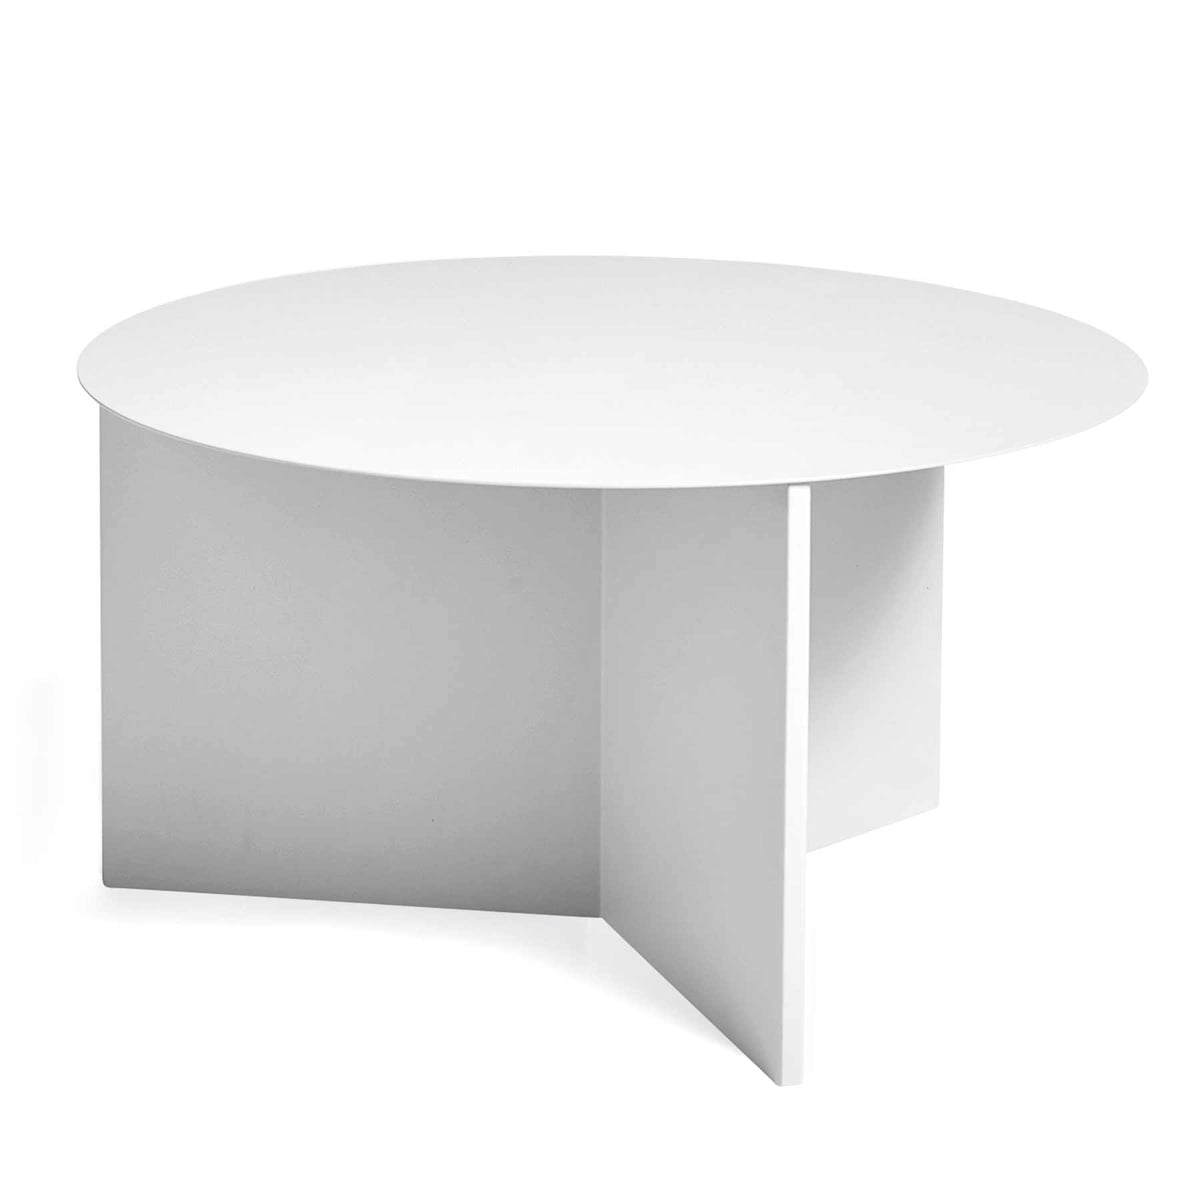 slit table xl by hay connox shop. Black Bedroom Furniture Sets. Home Design Ideas